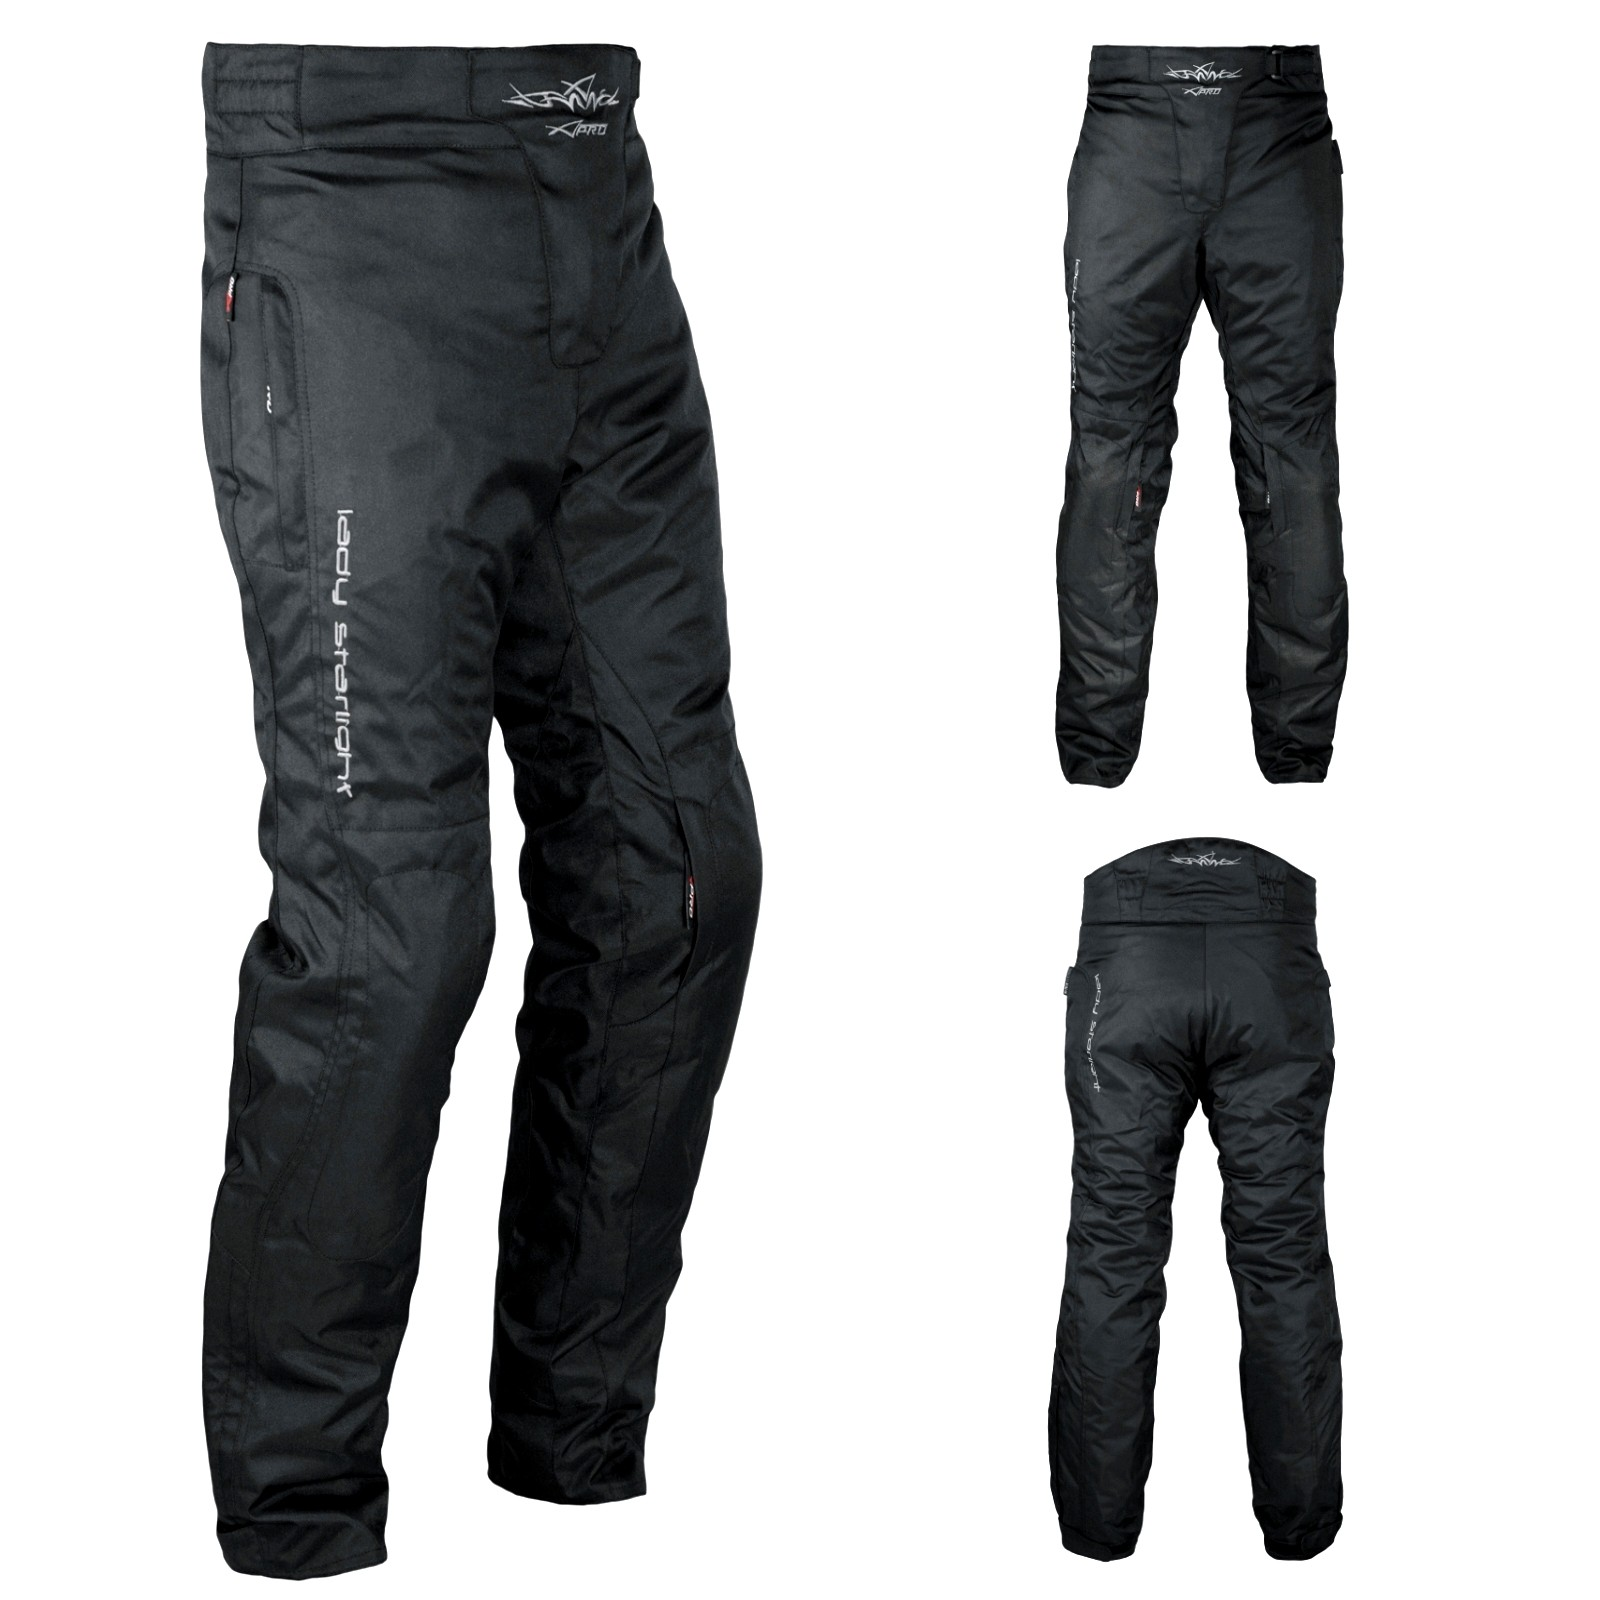 STARLIGHT_Lady_Textile_Trousers_Motorcycle_A-pro